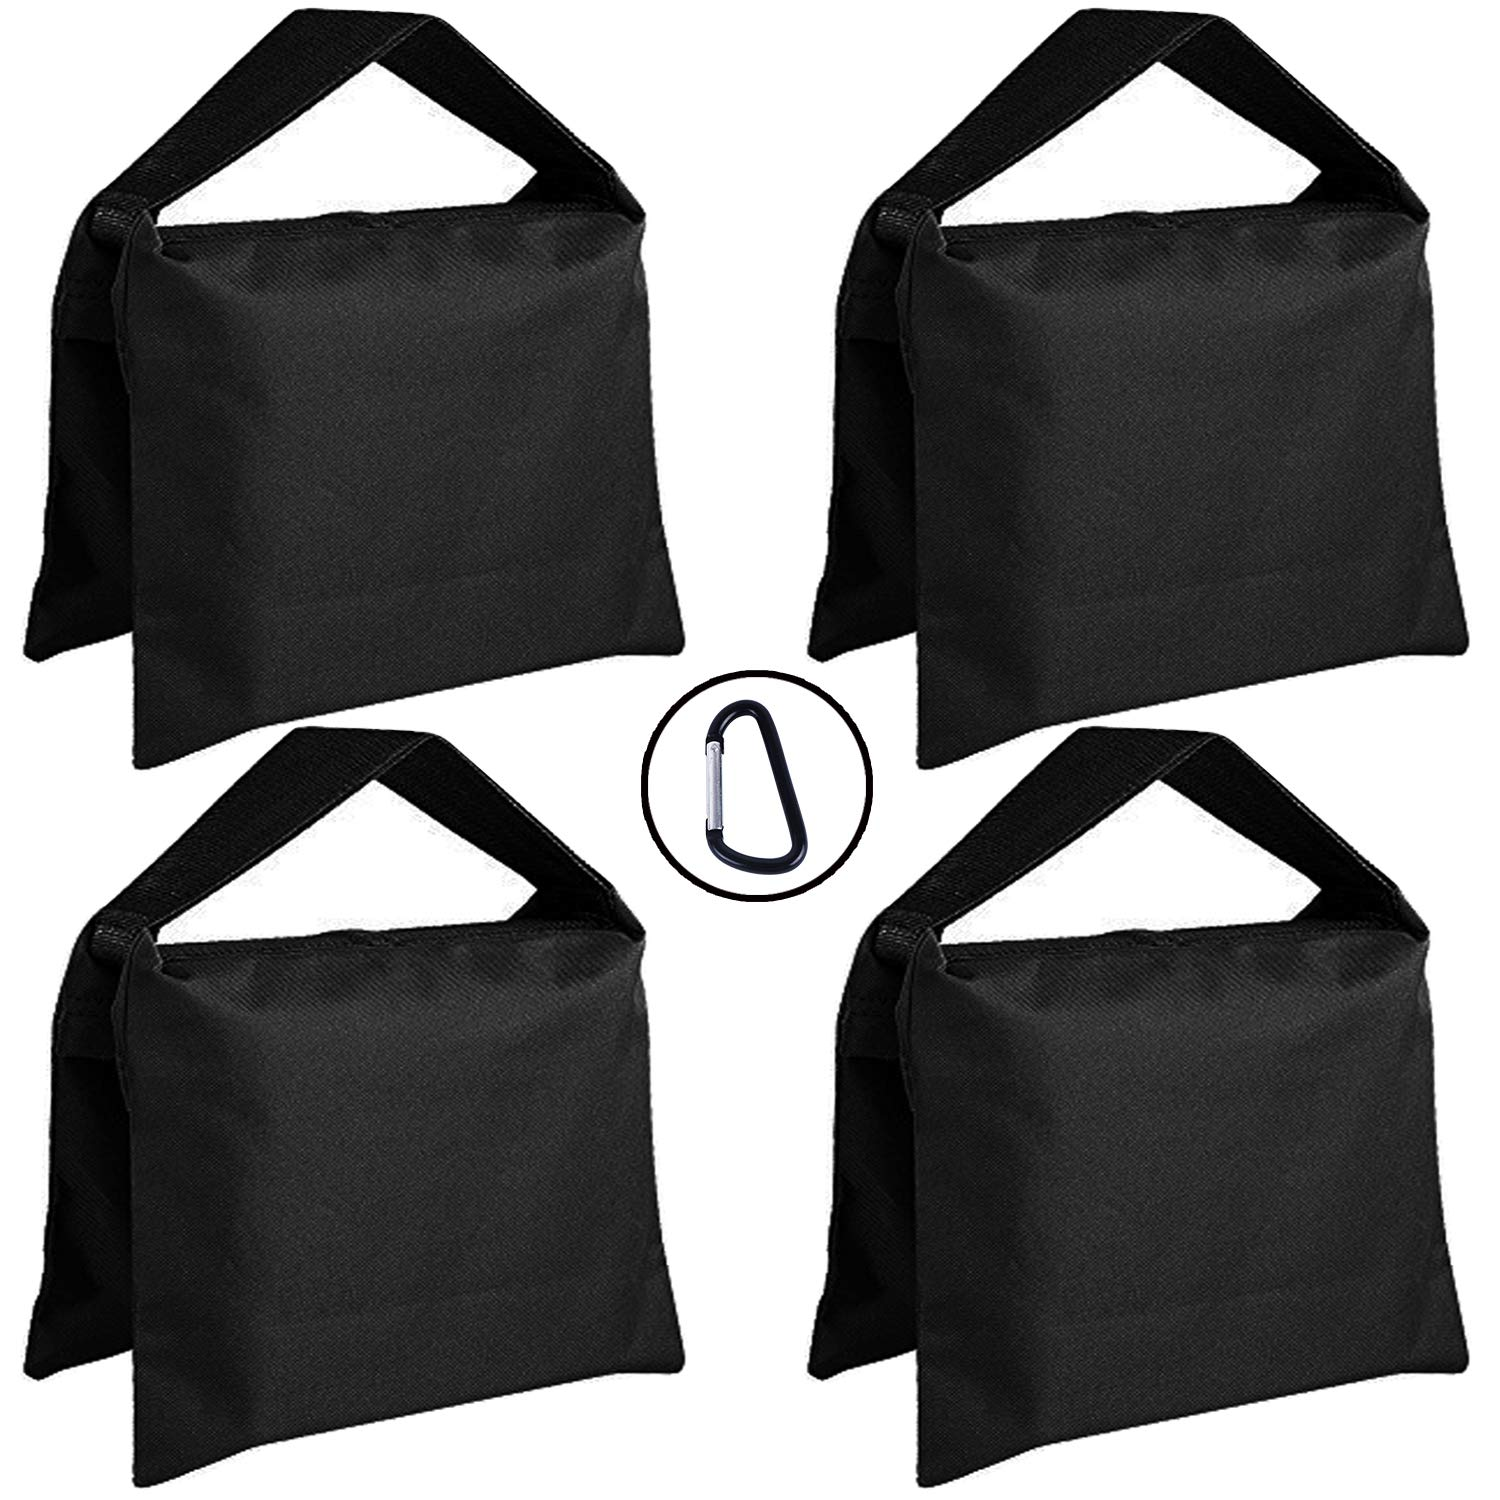 ABCCANOPY Super Heavy Duty Sandbag Saddlebag Design 4 Weight Bags for Photo Video Studio Stand (Black)